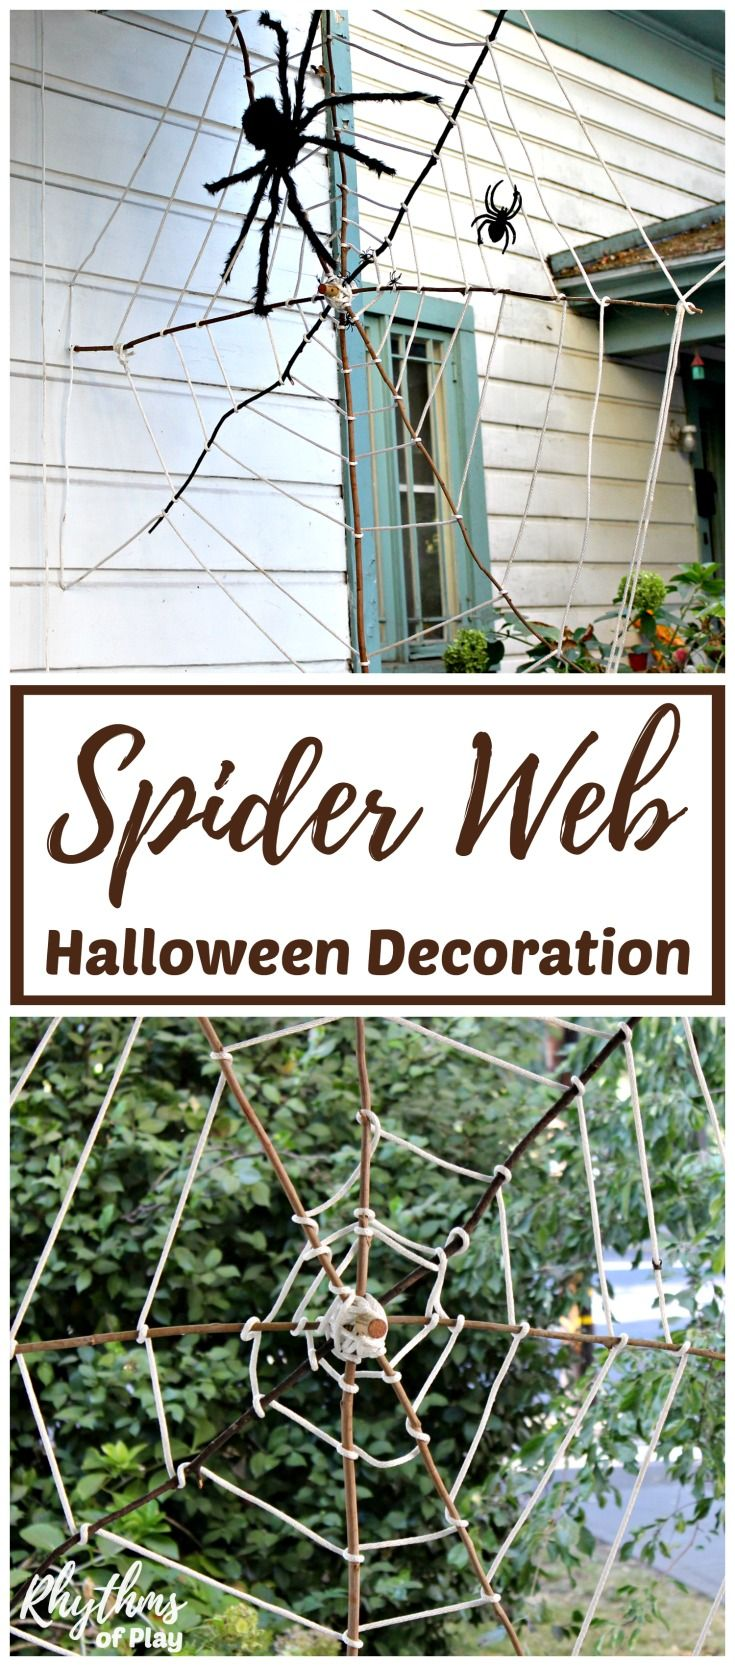 giant stick spider web halloween decoration rhythms of play